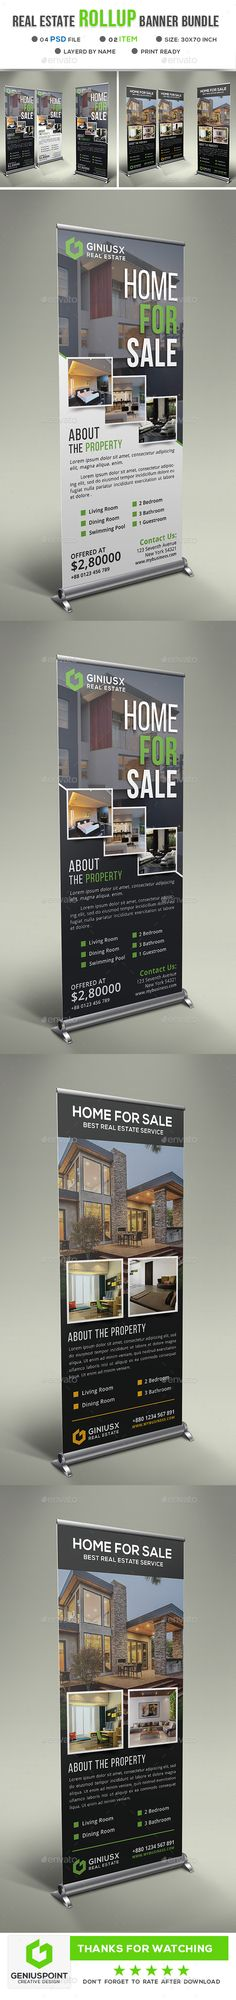 Real Estate Roll Up Banner Template PSD Bundle